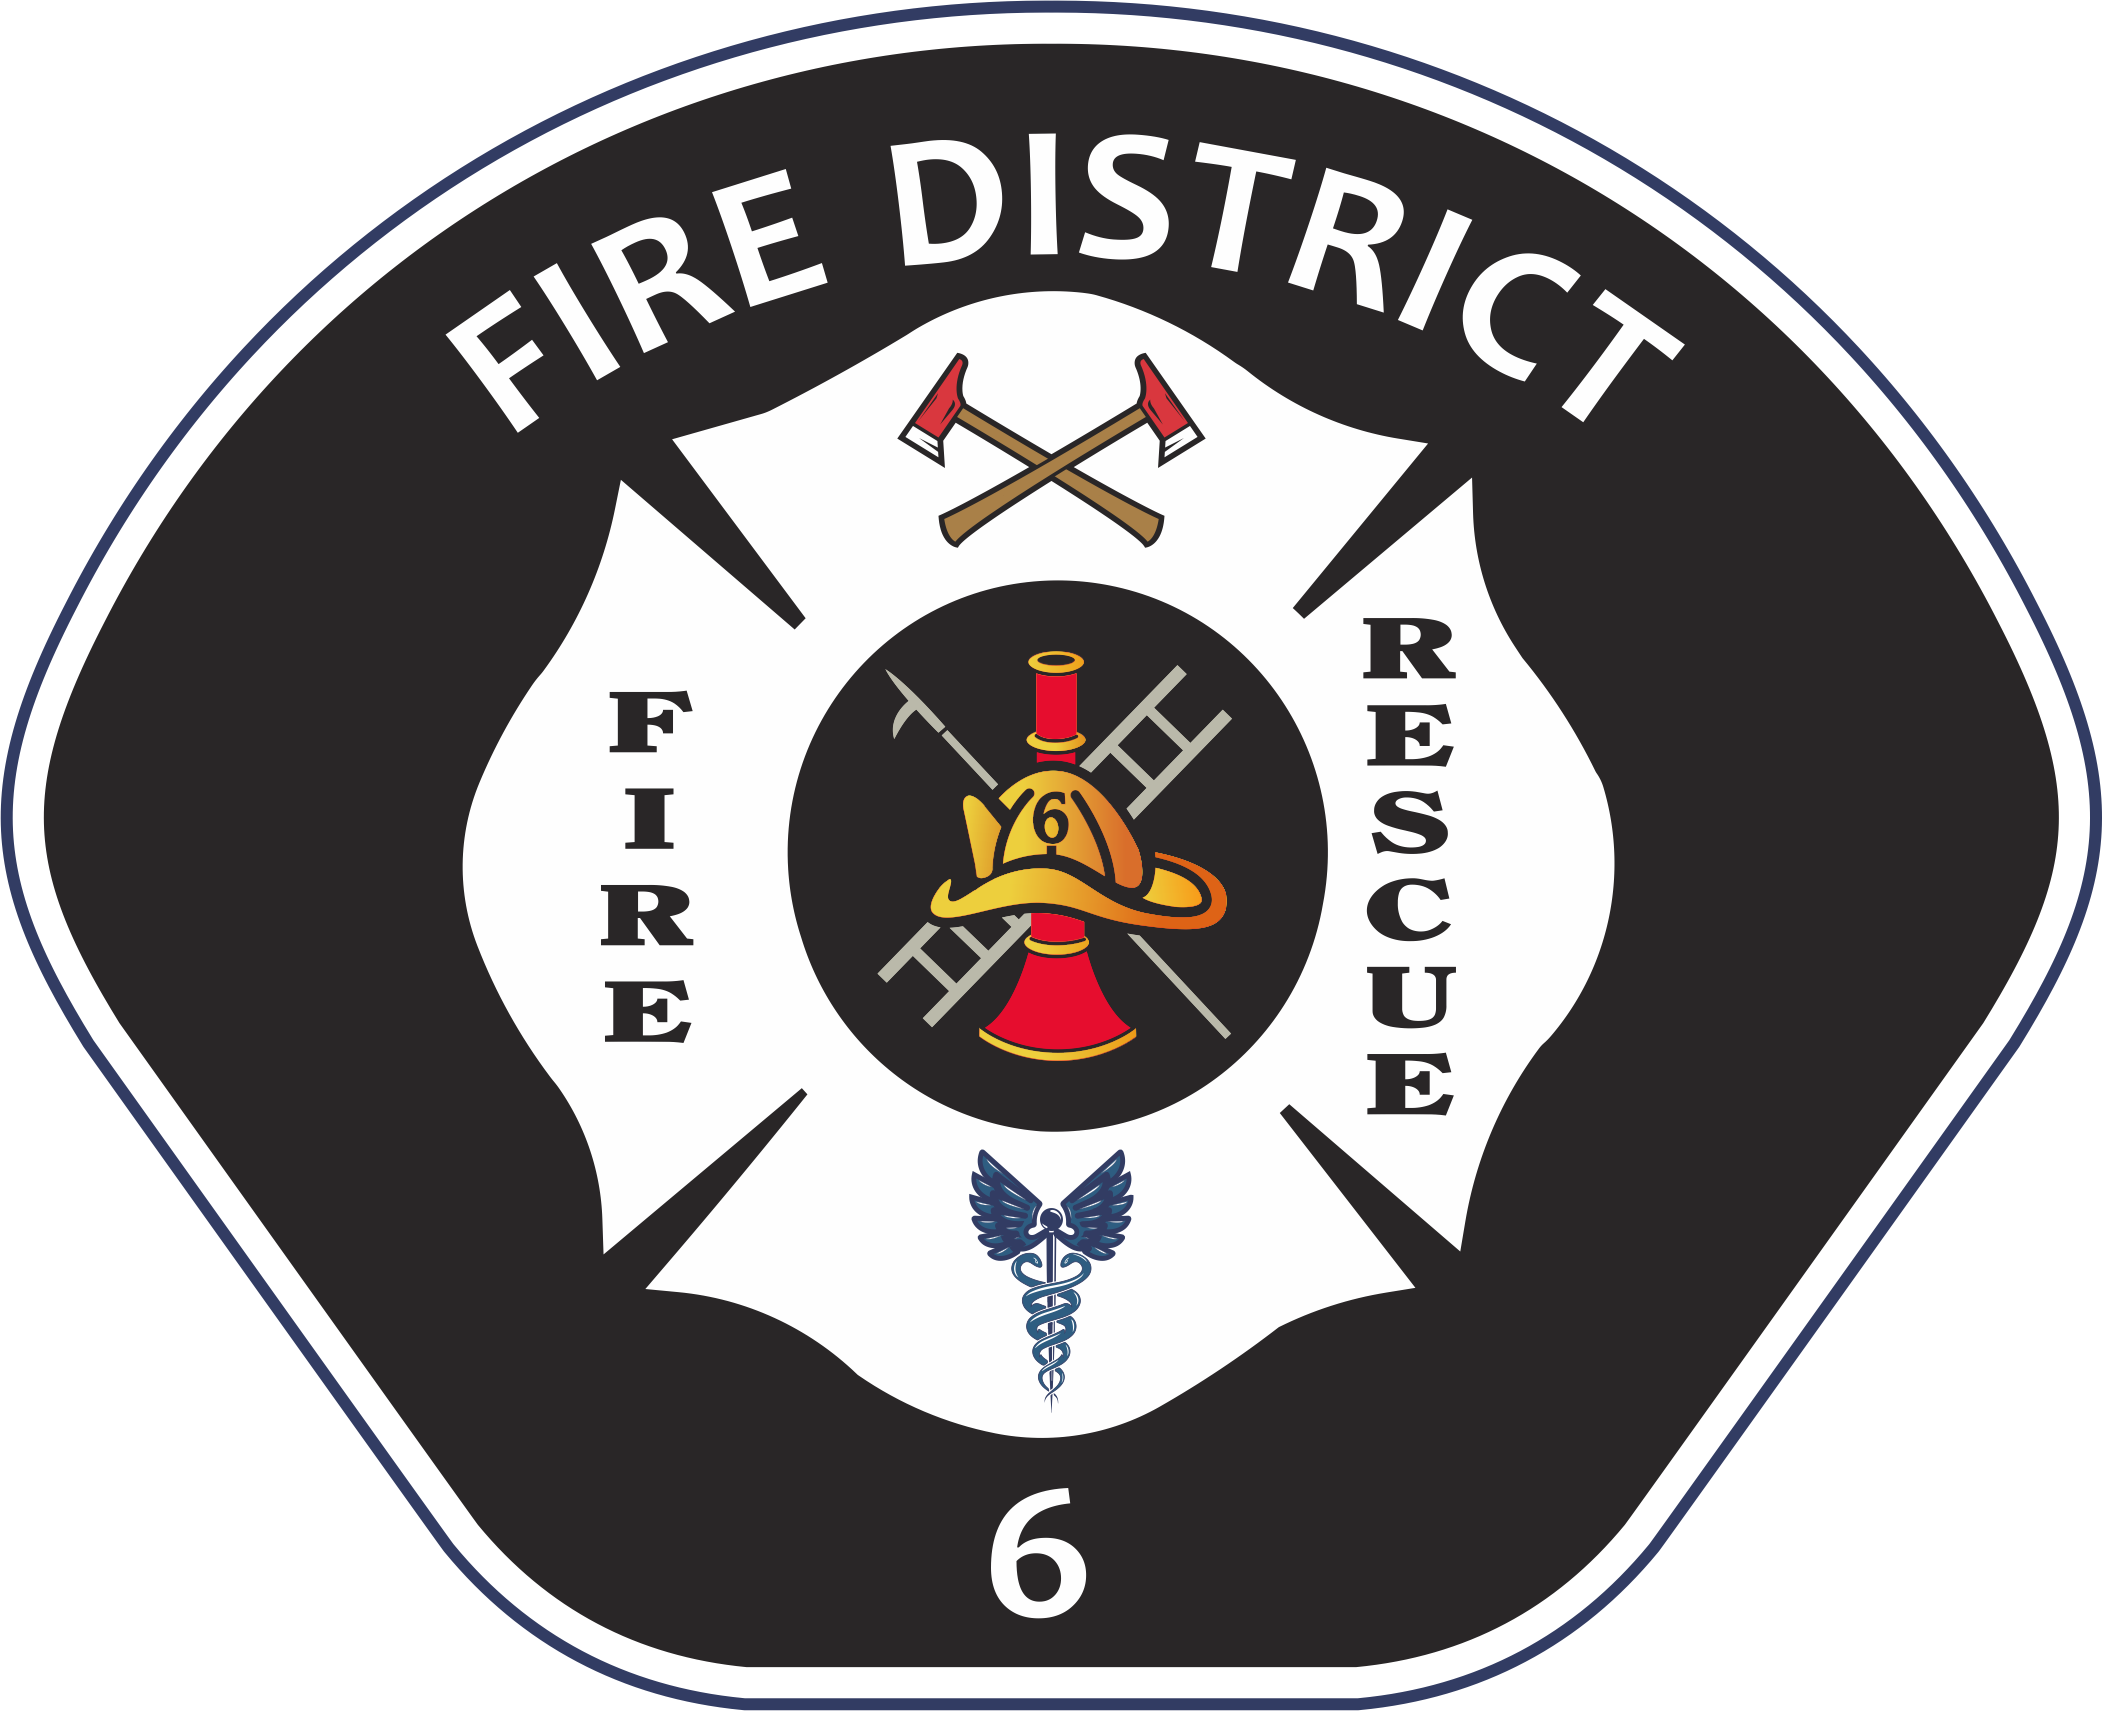 Clark County Fire District 6